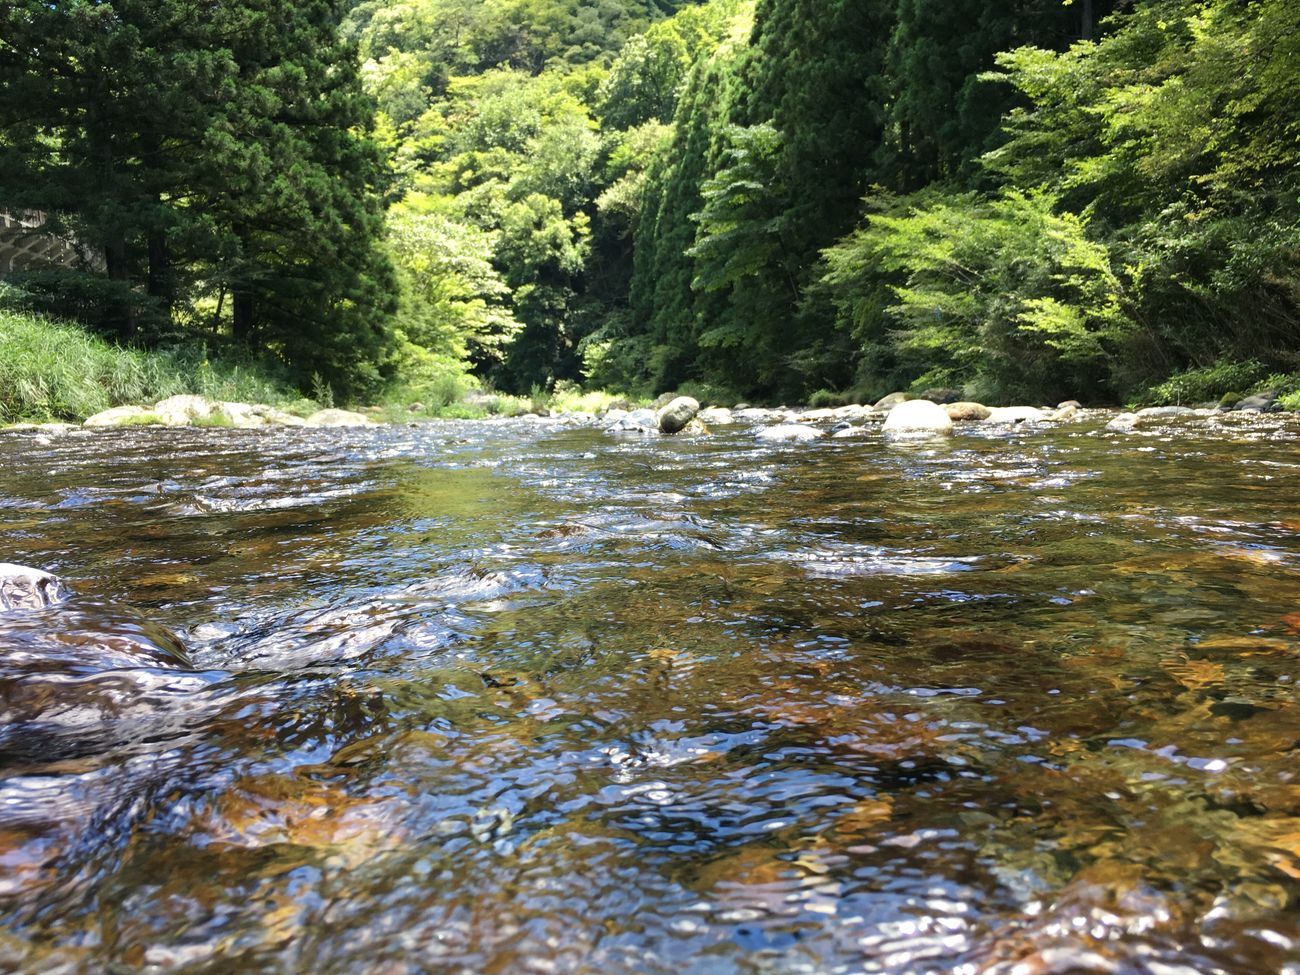 Enjoying Life Hi! Swim 大自然 River 川 清流 Happy Enjoy 癒し 緑 川遊び Clear Stream Superb View Forest River Swim 風景 絶景 Fishing Landscape Riverside